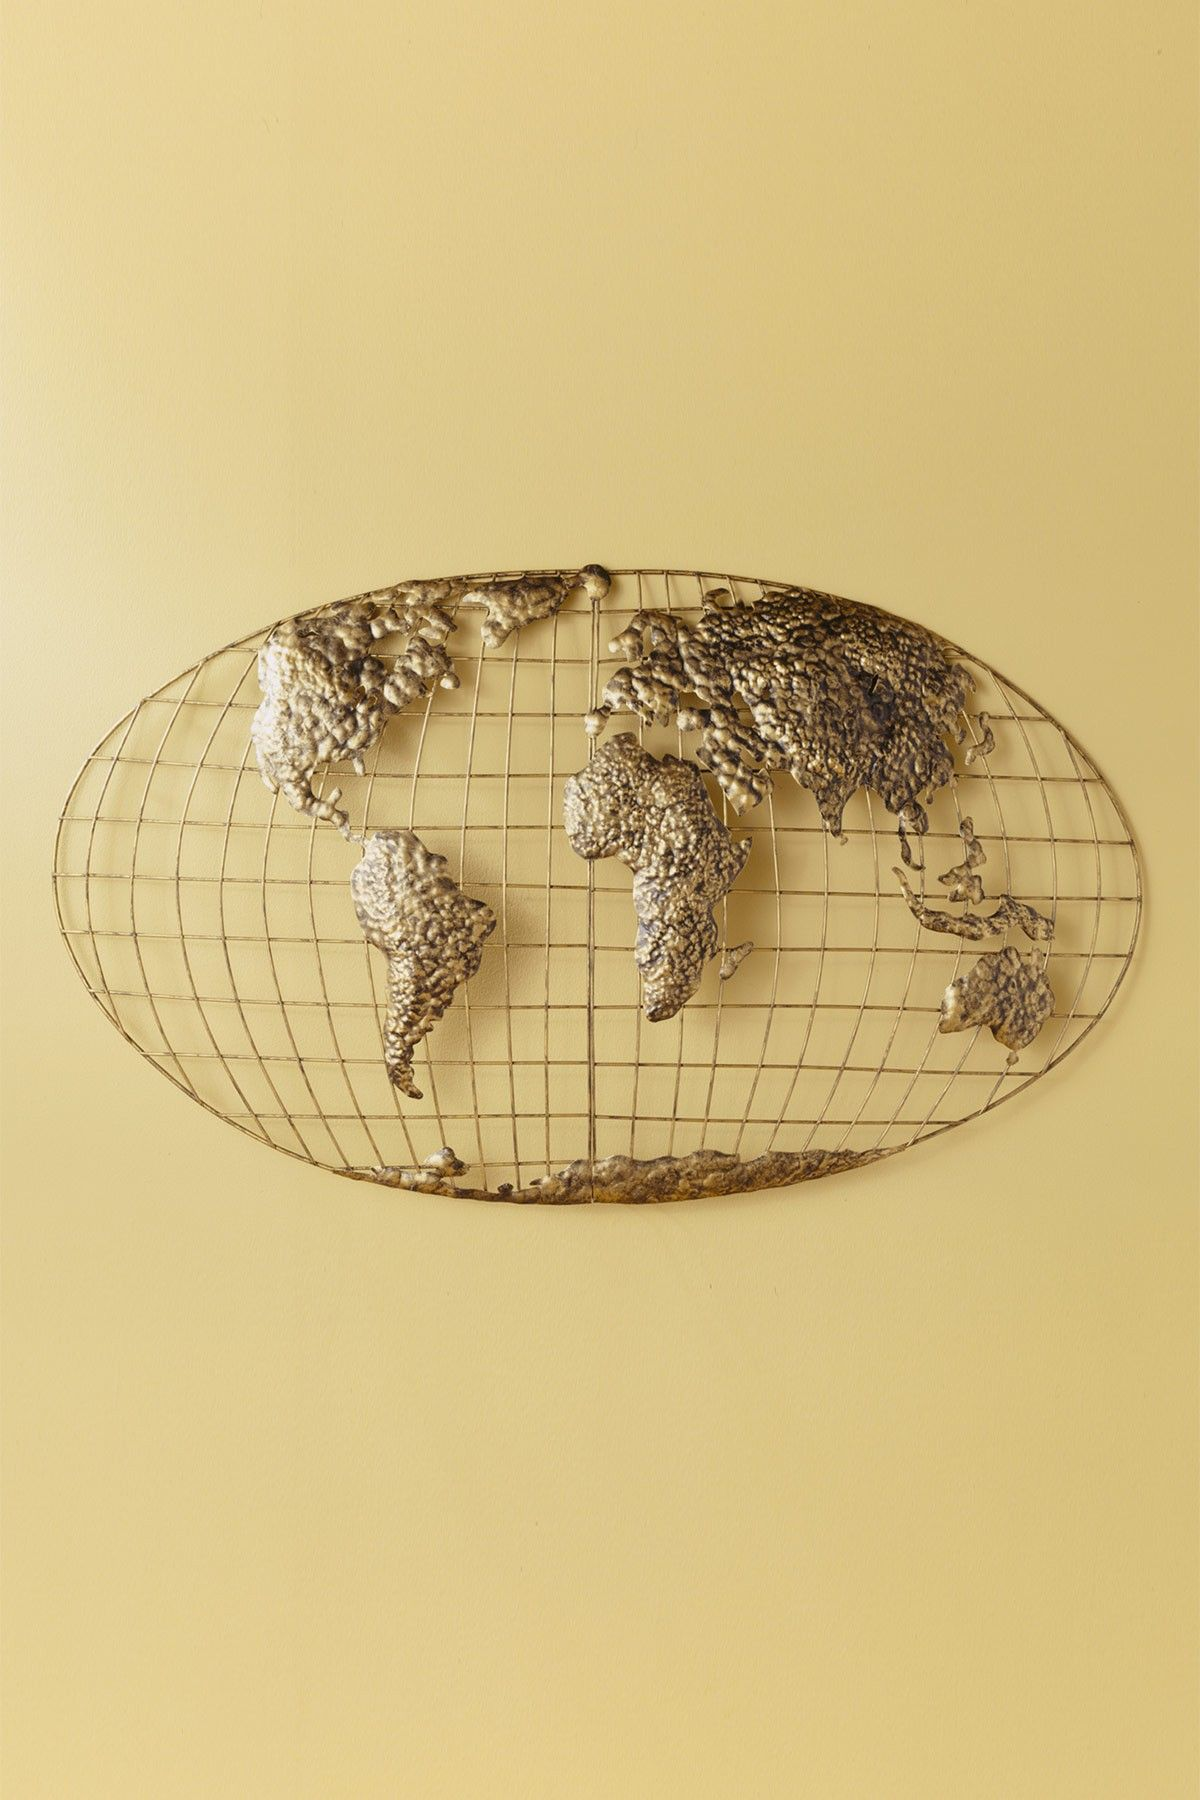 Iron World Map Wall Art | For the Wall | Pinterest | Iron, Walls and ...